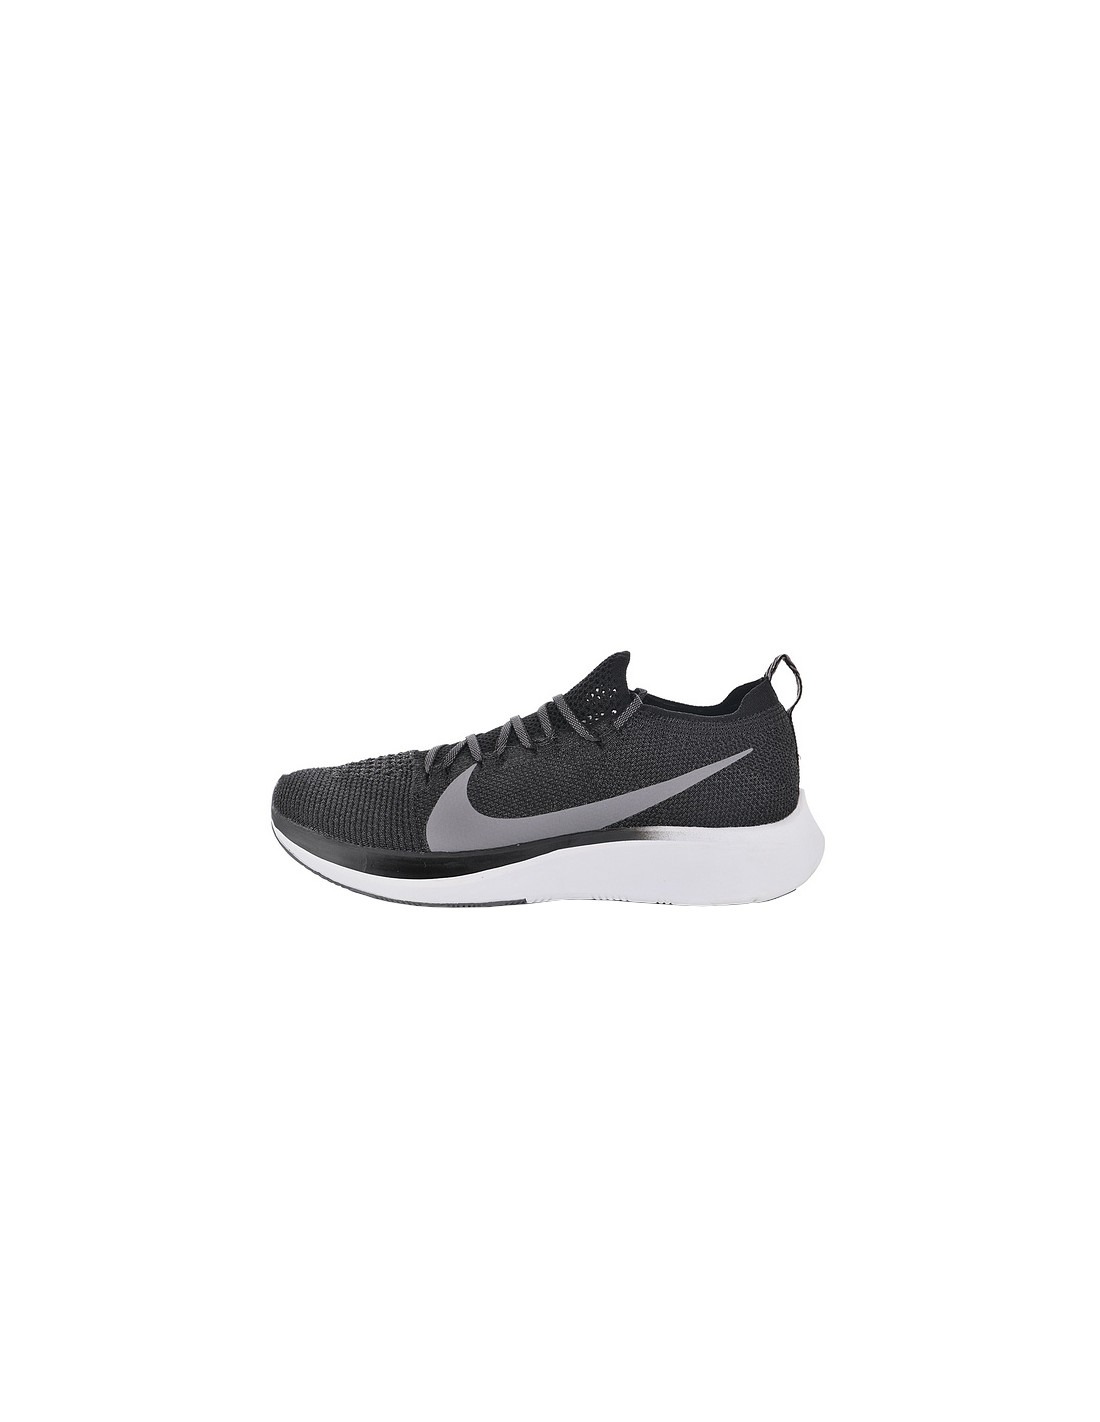 VaporFly 4% Flyknit Running Shoes